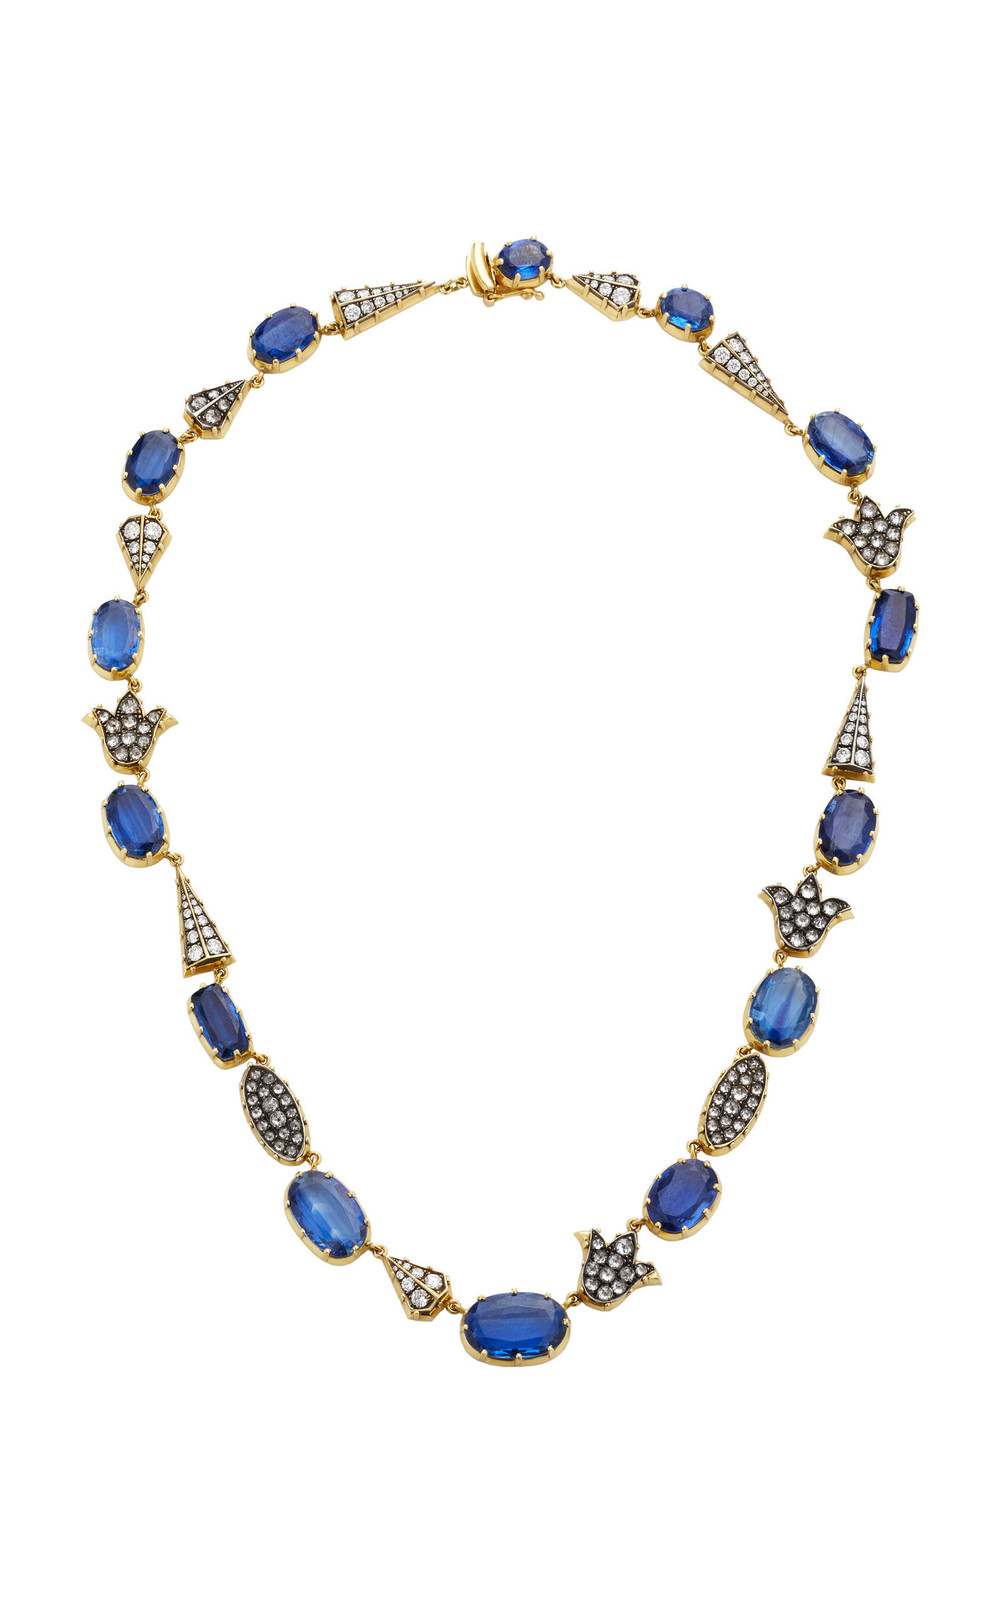 Sylva & Cie 18K Gold Sterling Silver Diamond and Kyanite Necklace in blue